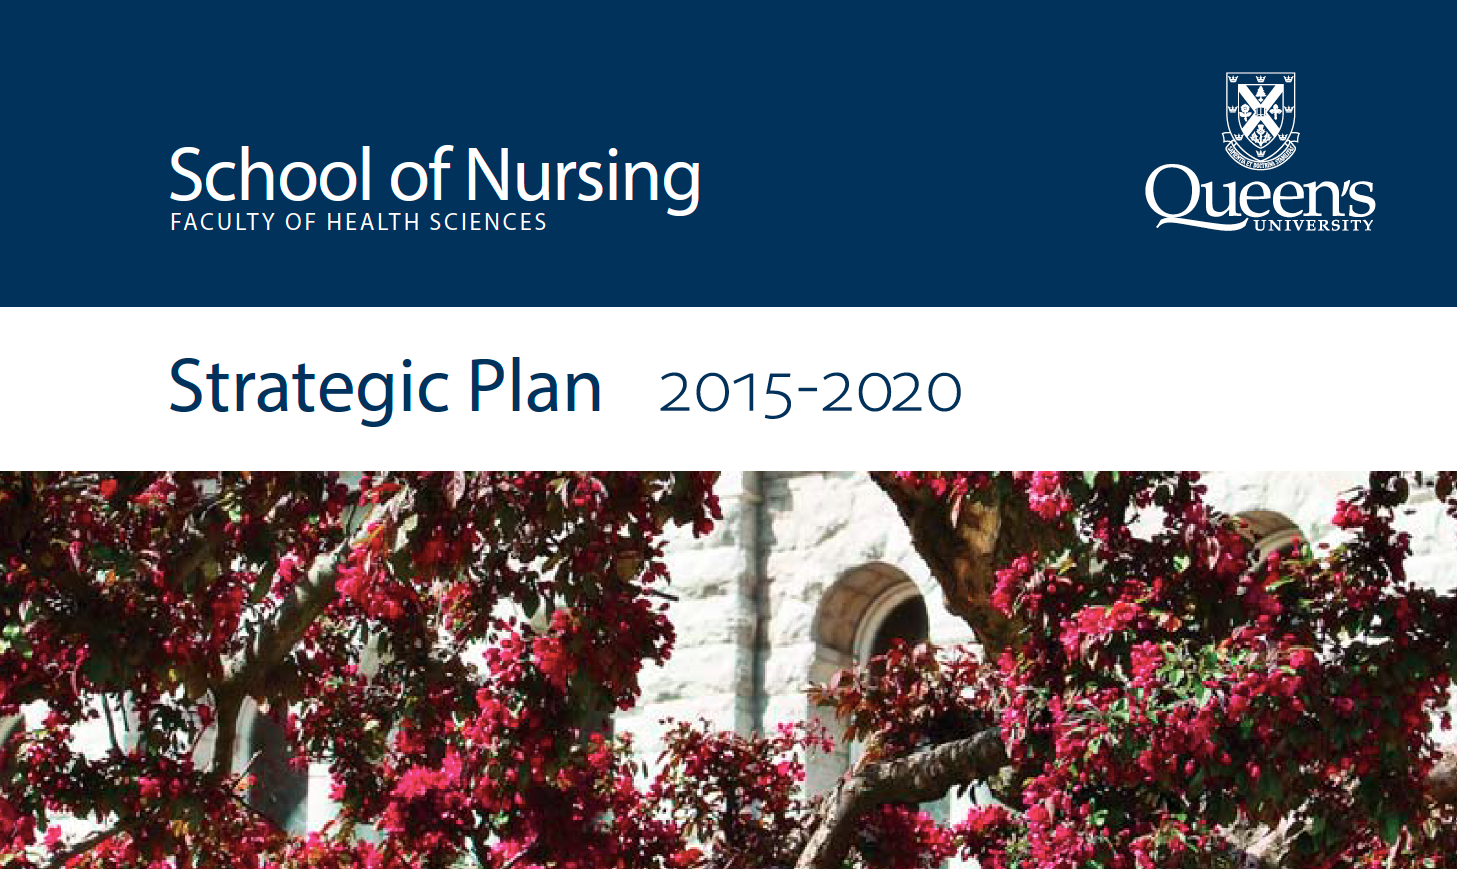 School of Nursing - Strategic Plan 2015-2020